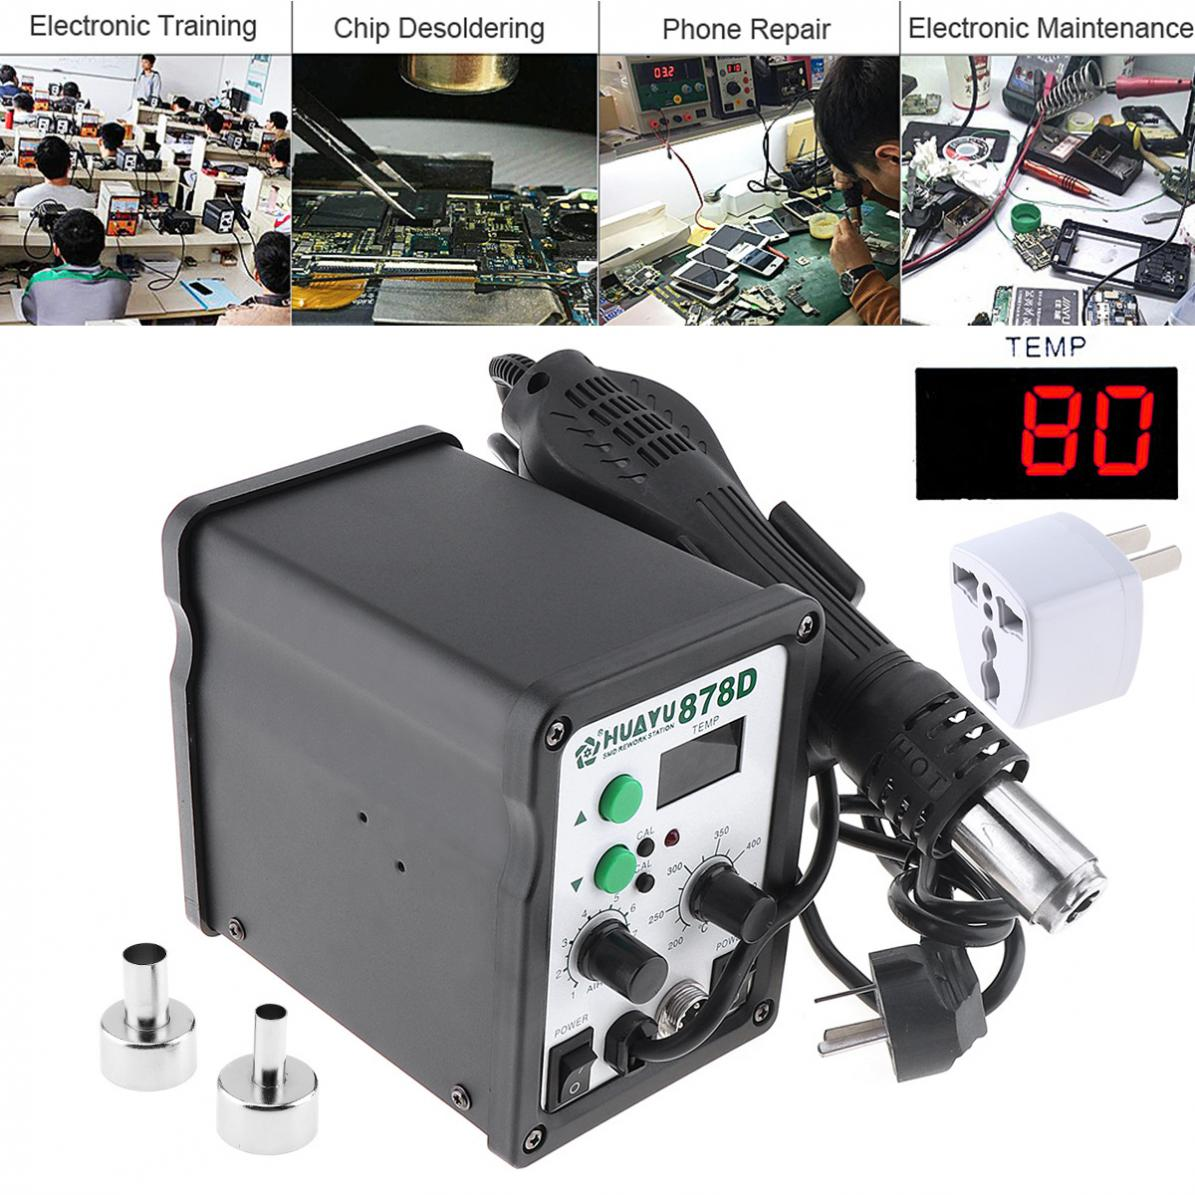 H878D Multifunction 110V LCD Digital Display Hot-Air Desoldering Station with Electric Soldering Iron and Soldering Iron Stent h878a multifunction 110v hot air desoldering station with electric soldering iron and soldering iron stent for drying